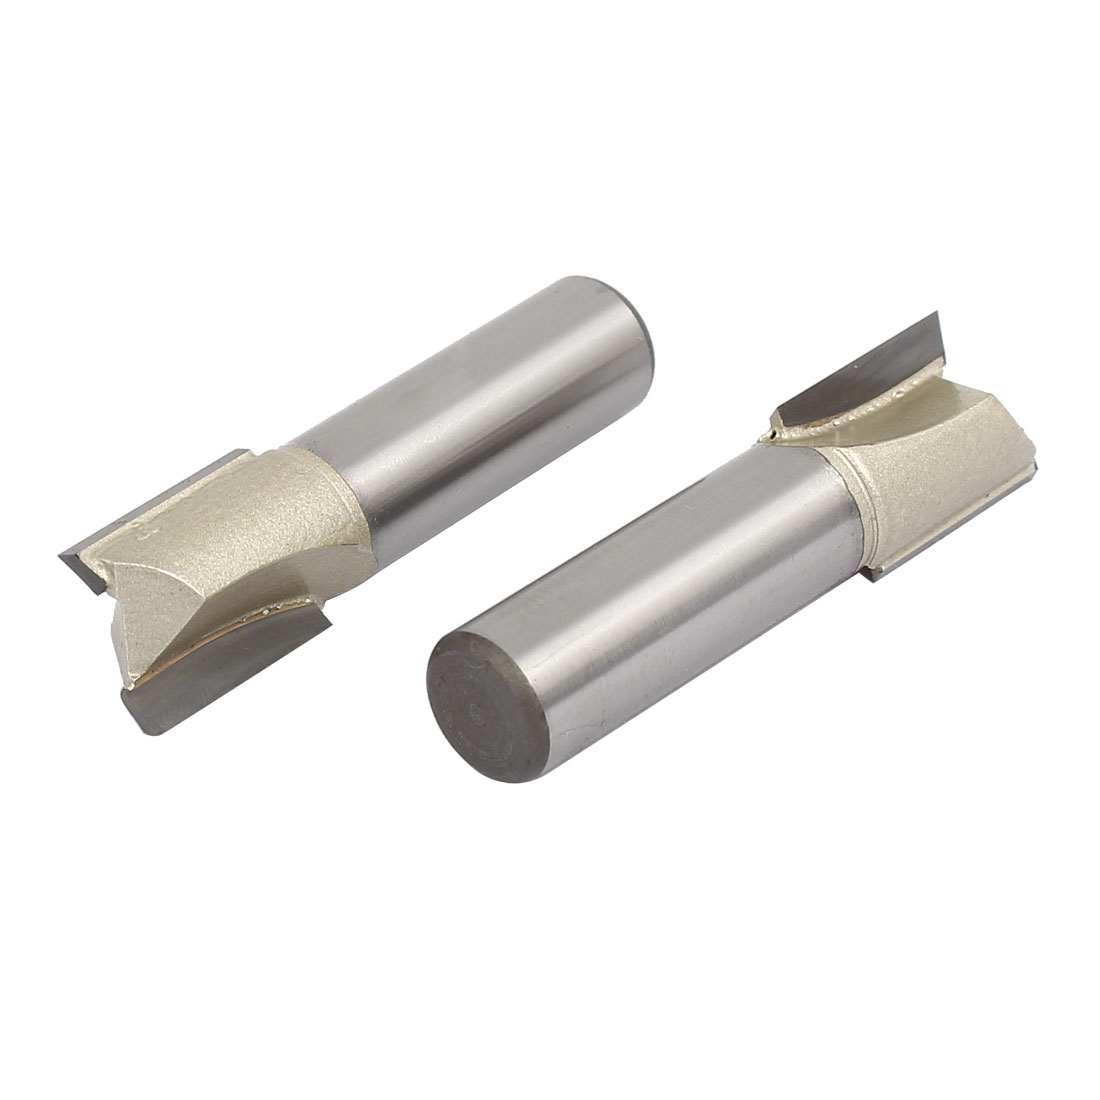 1/2-inch Shank 5/8-inch Cutting Dia 2 Flutes Straight Router Bits Cutters 2pcs